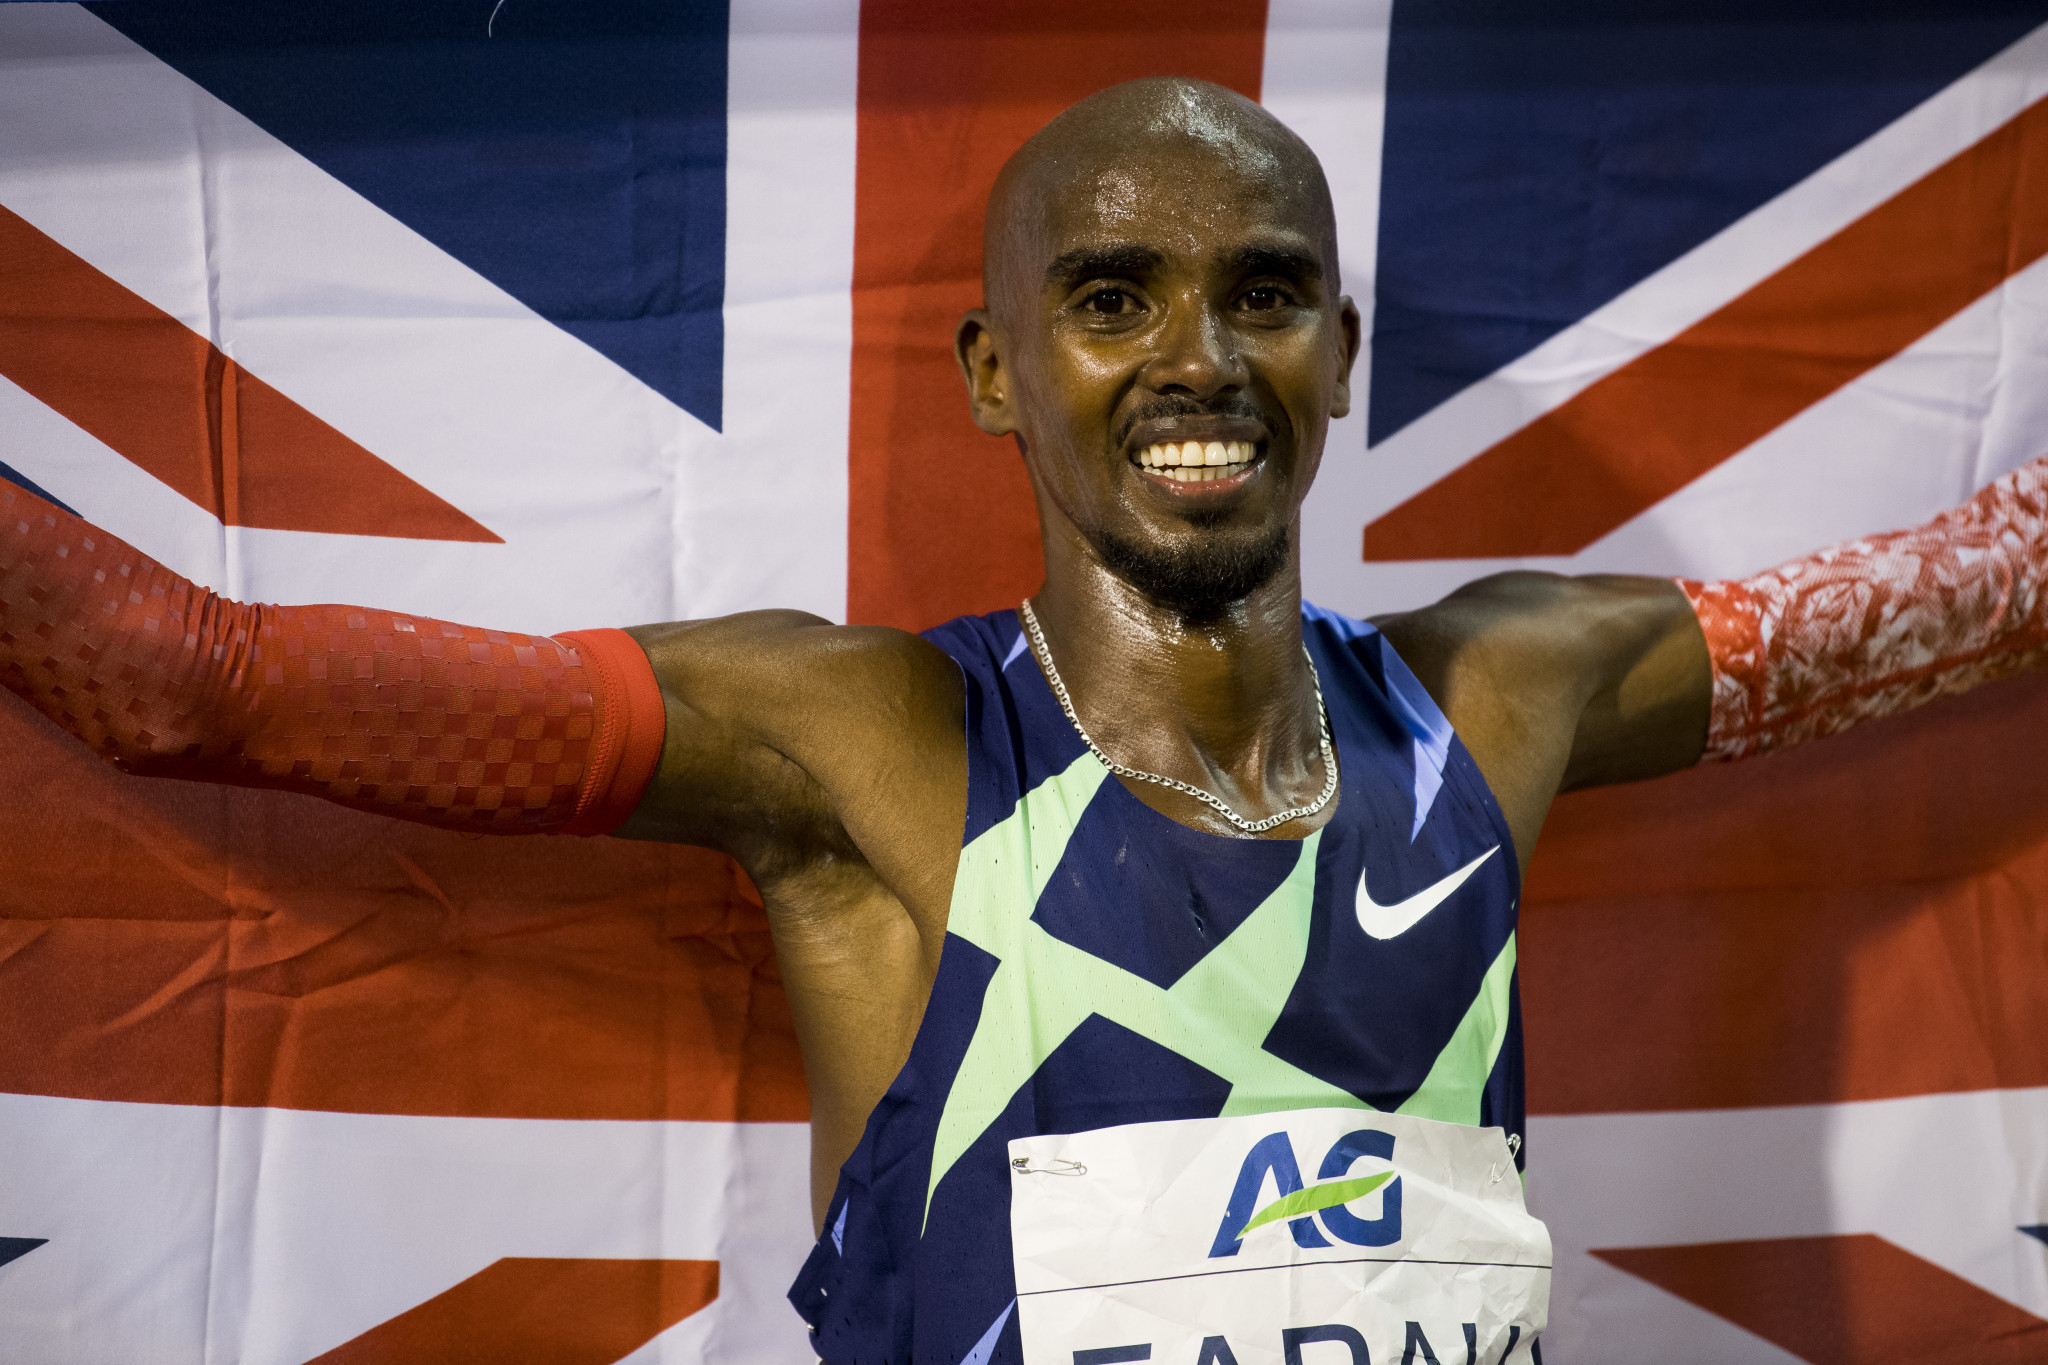 Sir Mo Farah warned I'm a Celebrity appearance could impact Tokyo 2020 preparations